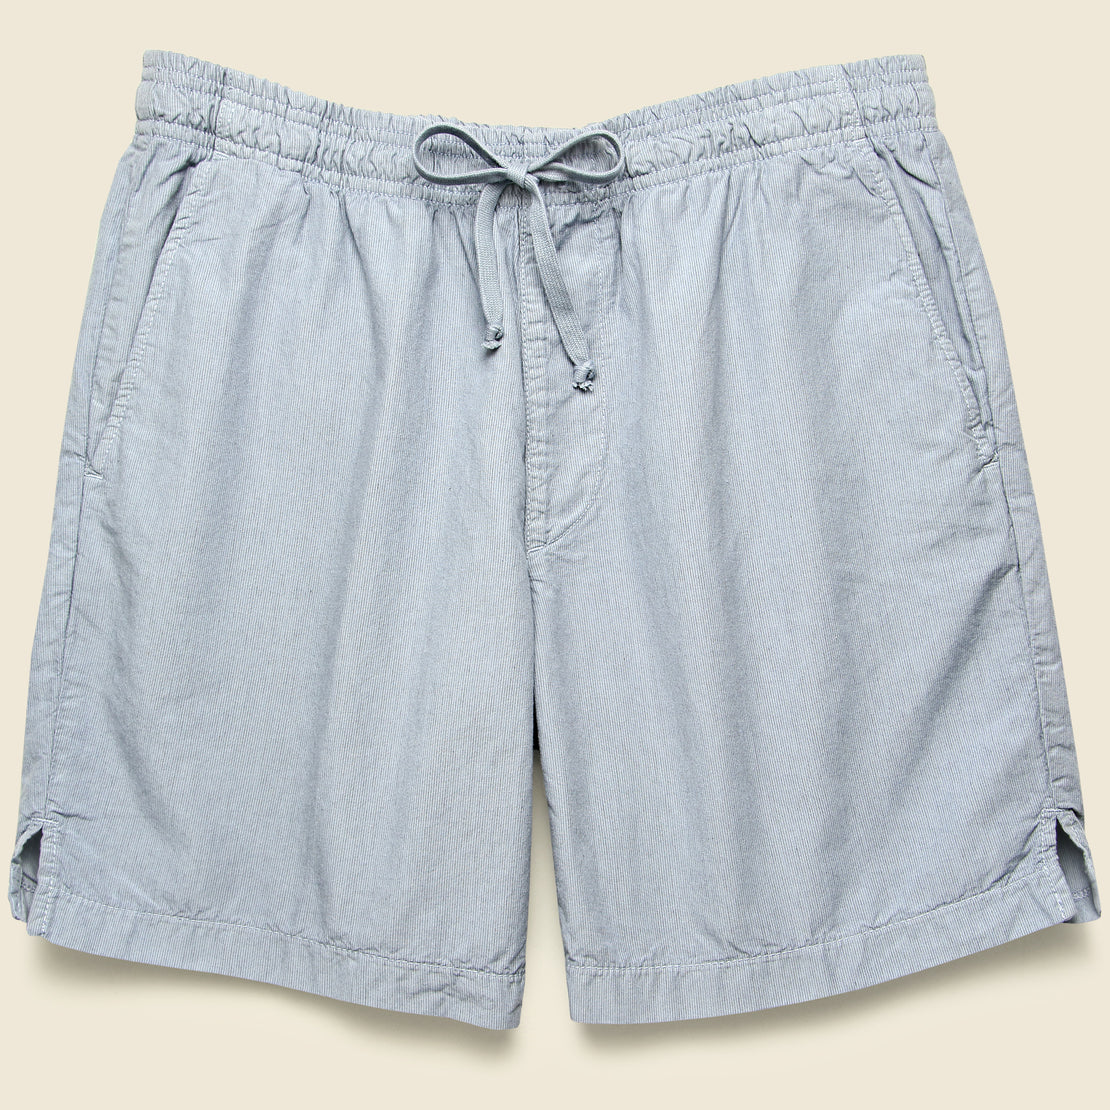 Save Khaki Stripe Easy Short - Sky